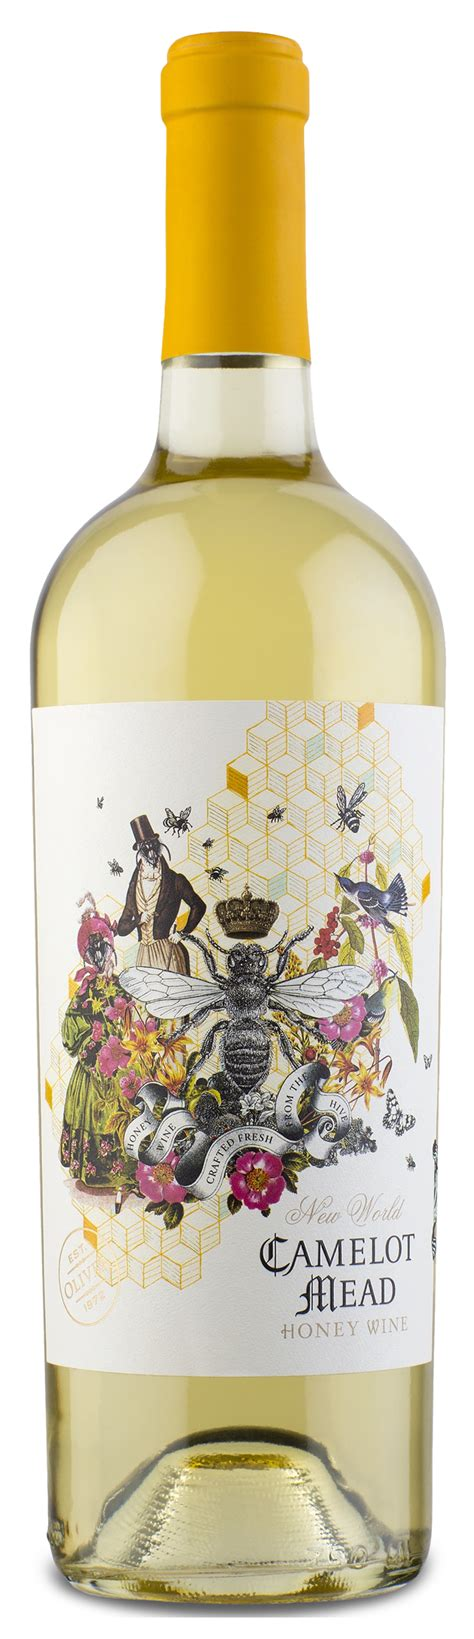 best honey for mead camelot mead best selling honey wine from oliver